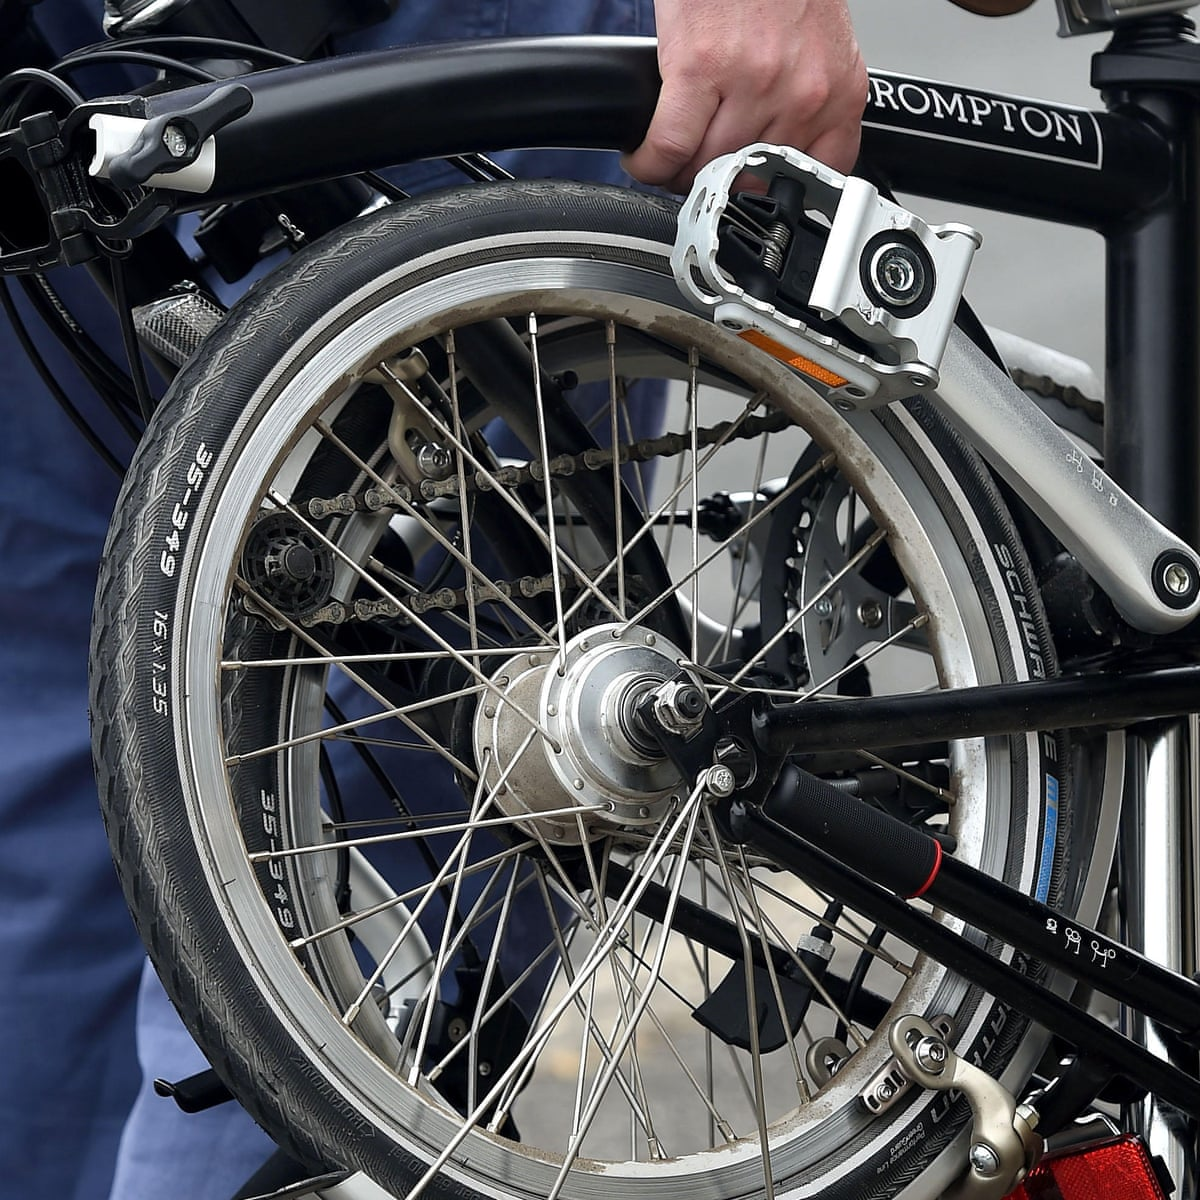 It S Hard To Find A Fix For My Faulty Brompton Bicycle Consumer Affairs The Guardian